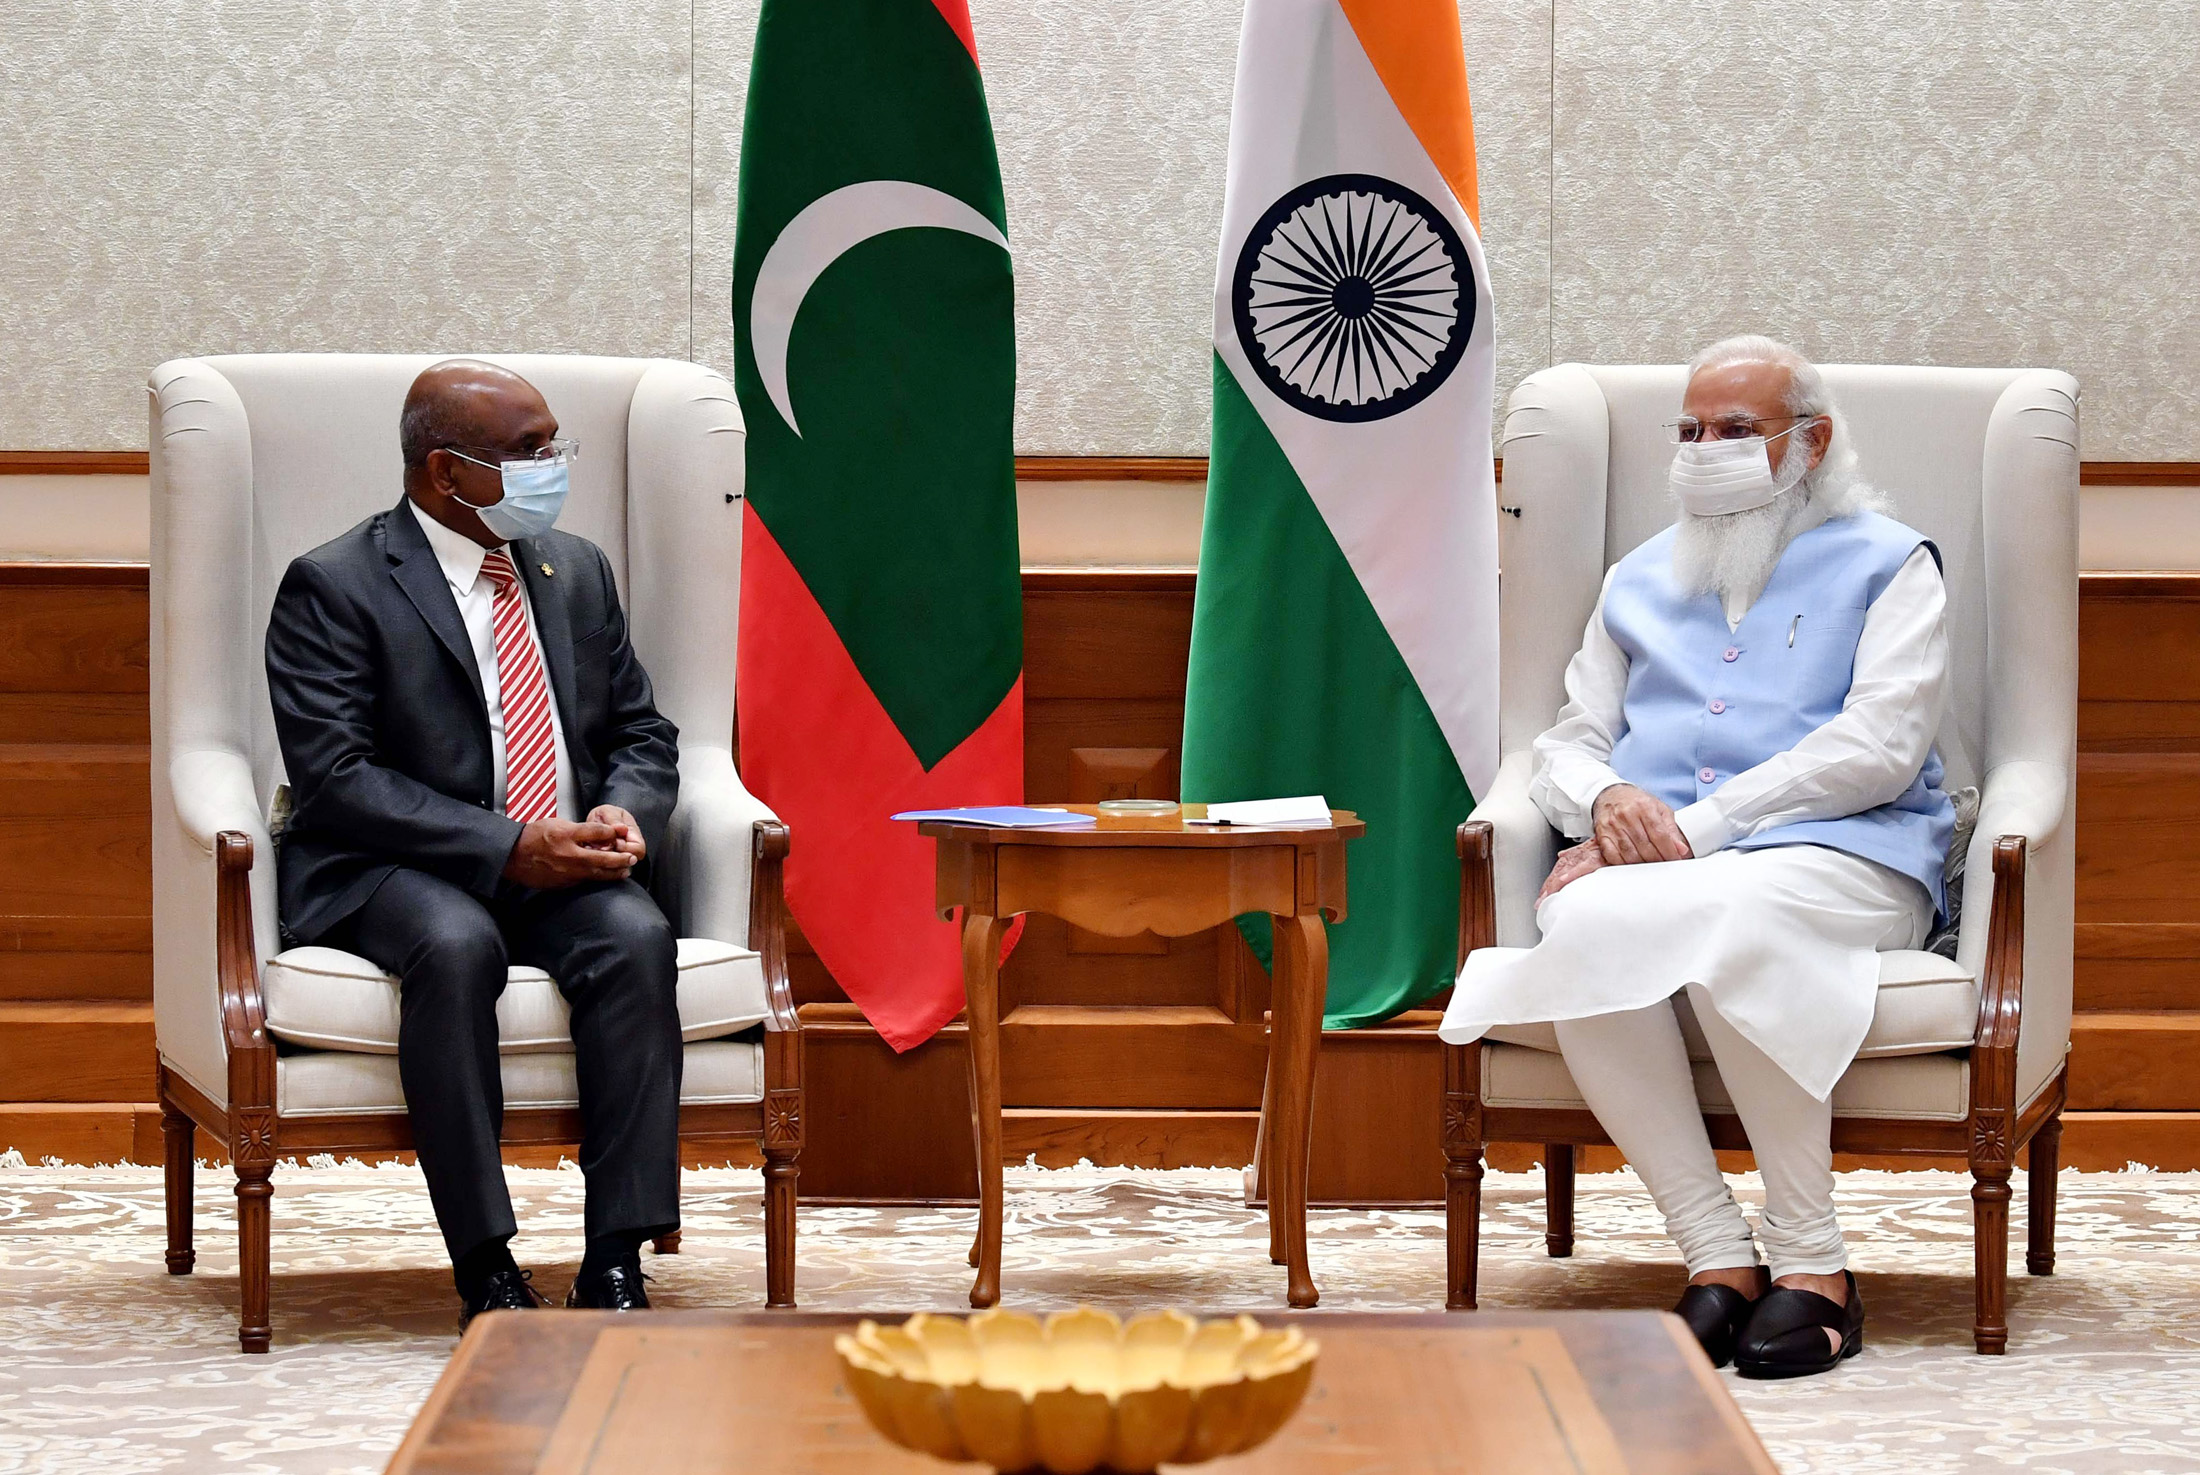 The President-elect of the 76th session of the United Nations General Assembly (UNGA) and Foreign Minister of the Maldives, Mr. Abdulla Shahid calling on the Prime Minister, Shri Narendra Modi, in New Delhi on July 23, 2021.